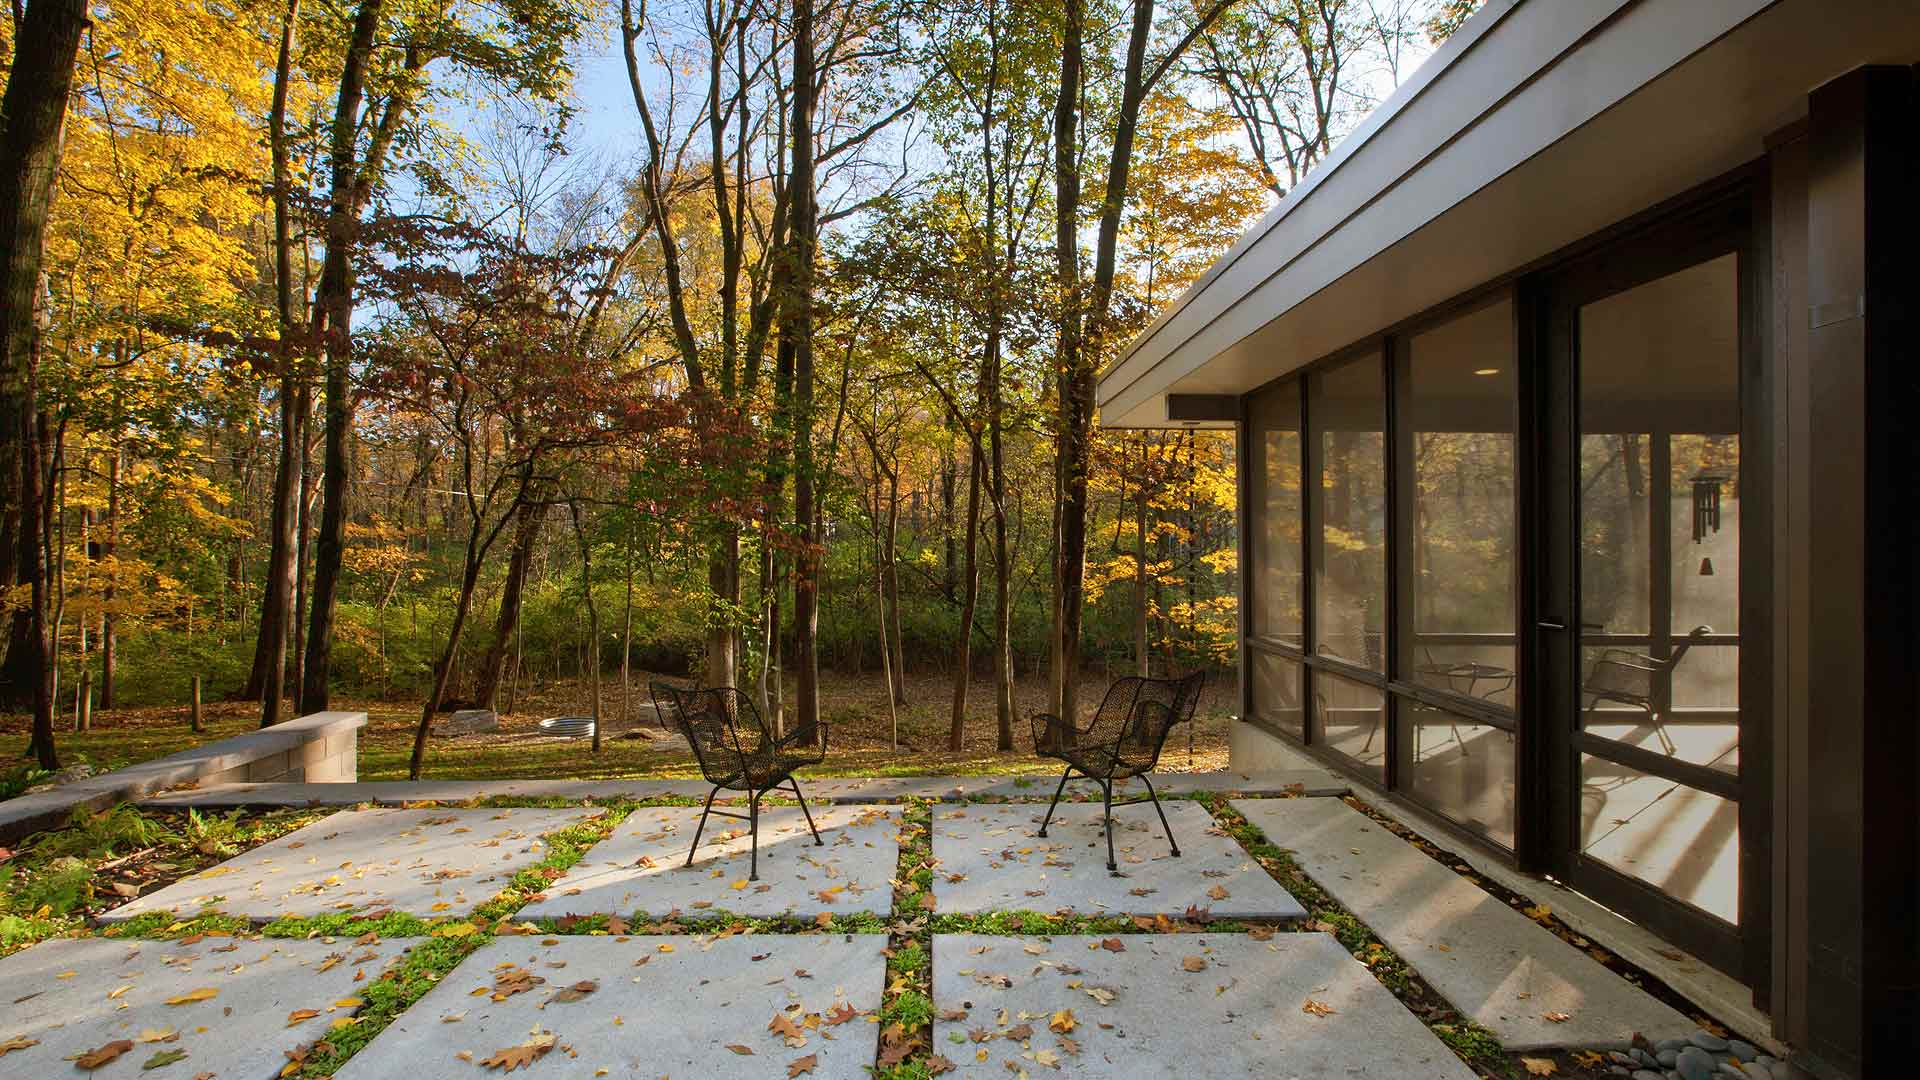 Private Backyard Terrace Garden, Rain Chains, Screened Porch, Wooded site, Midcentury Modern Renovation - 81st Street - Indianapolis, Christopher Short, Architect, HAUS Architecture